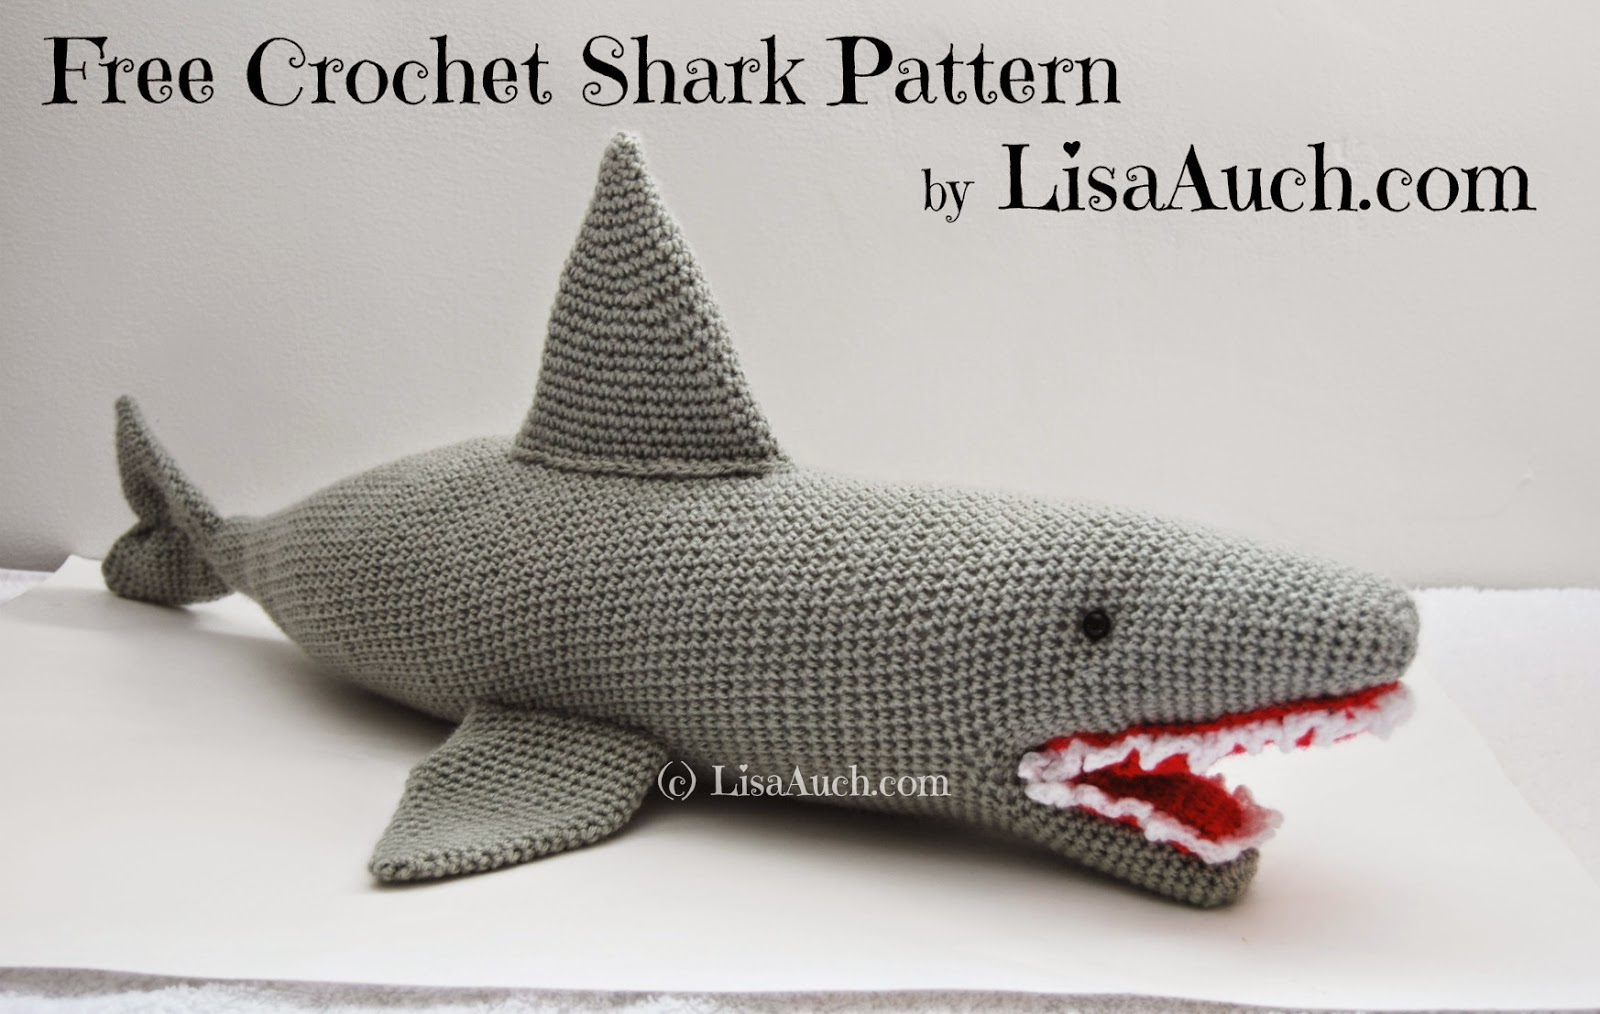 More Sea Creatures To Crochet Free Patterns